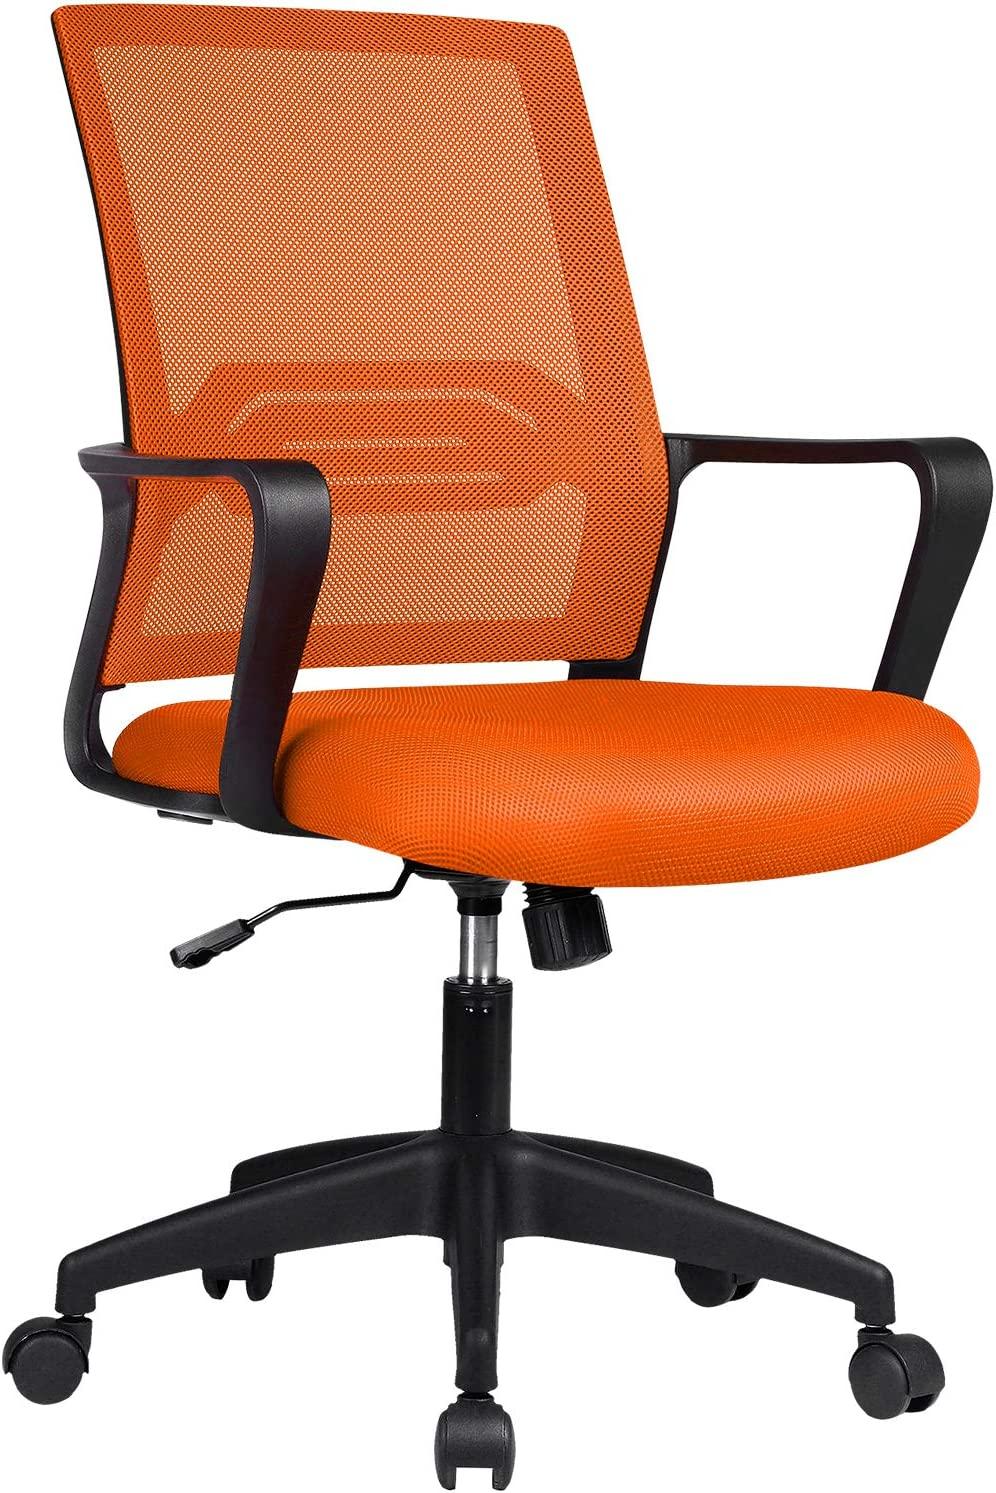 ComHoma Office Chair Ergonomic Desk Chair Mesh Computer Chair Mid Back Mesh Home Office Swivel Chair, Modern Executive Chair with Armrests Lumbar Support(Orange),